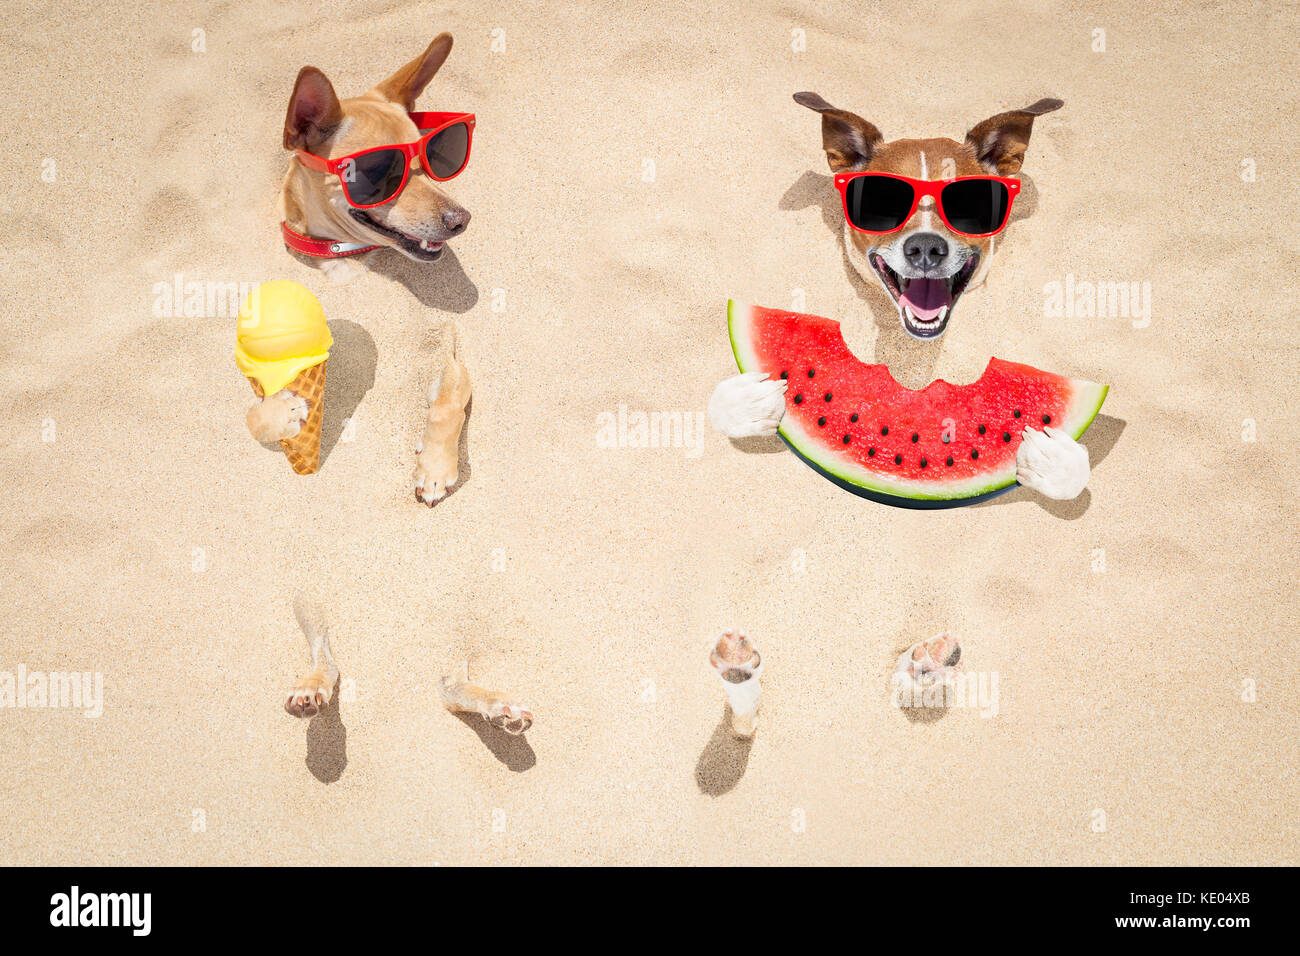 Funny Couple Of Dogs Buried In The Sand At Beach On Summer Vacation Holidays Wearing Red Sunglasses Eating A Fresh Juicy Watermelon And Ice